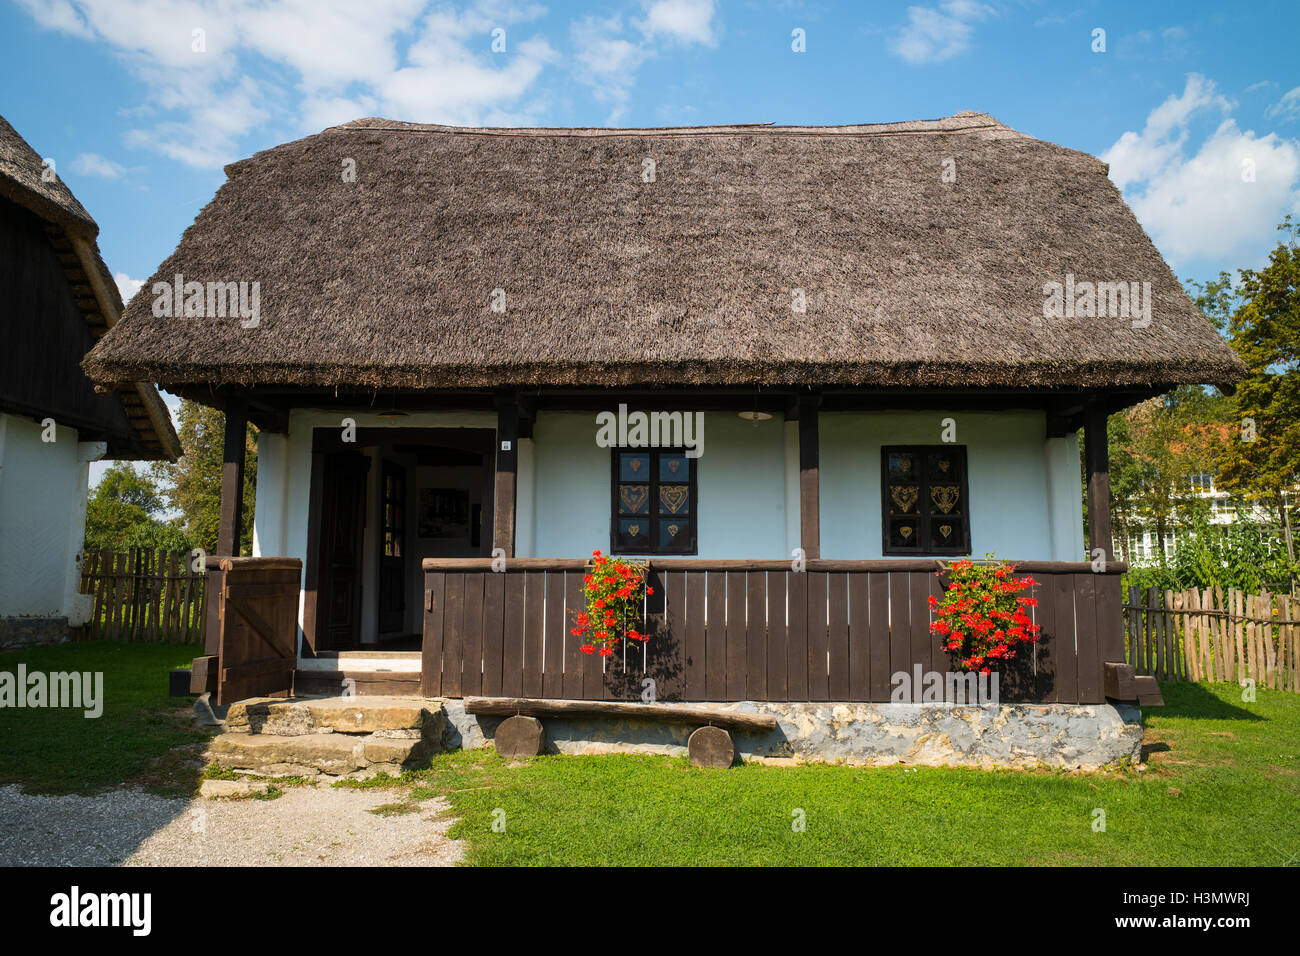 Traditional house village croatia stockfotos traditional for Traditionelles thai haus